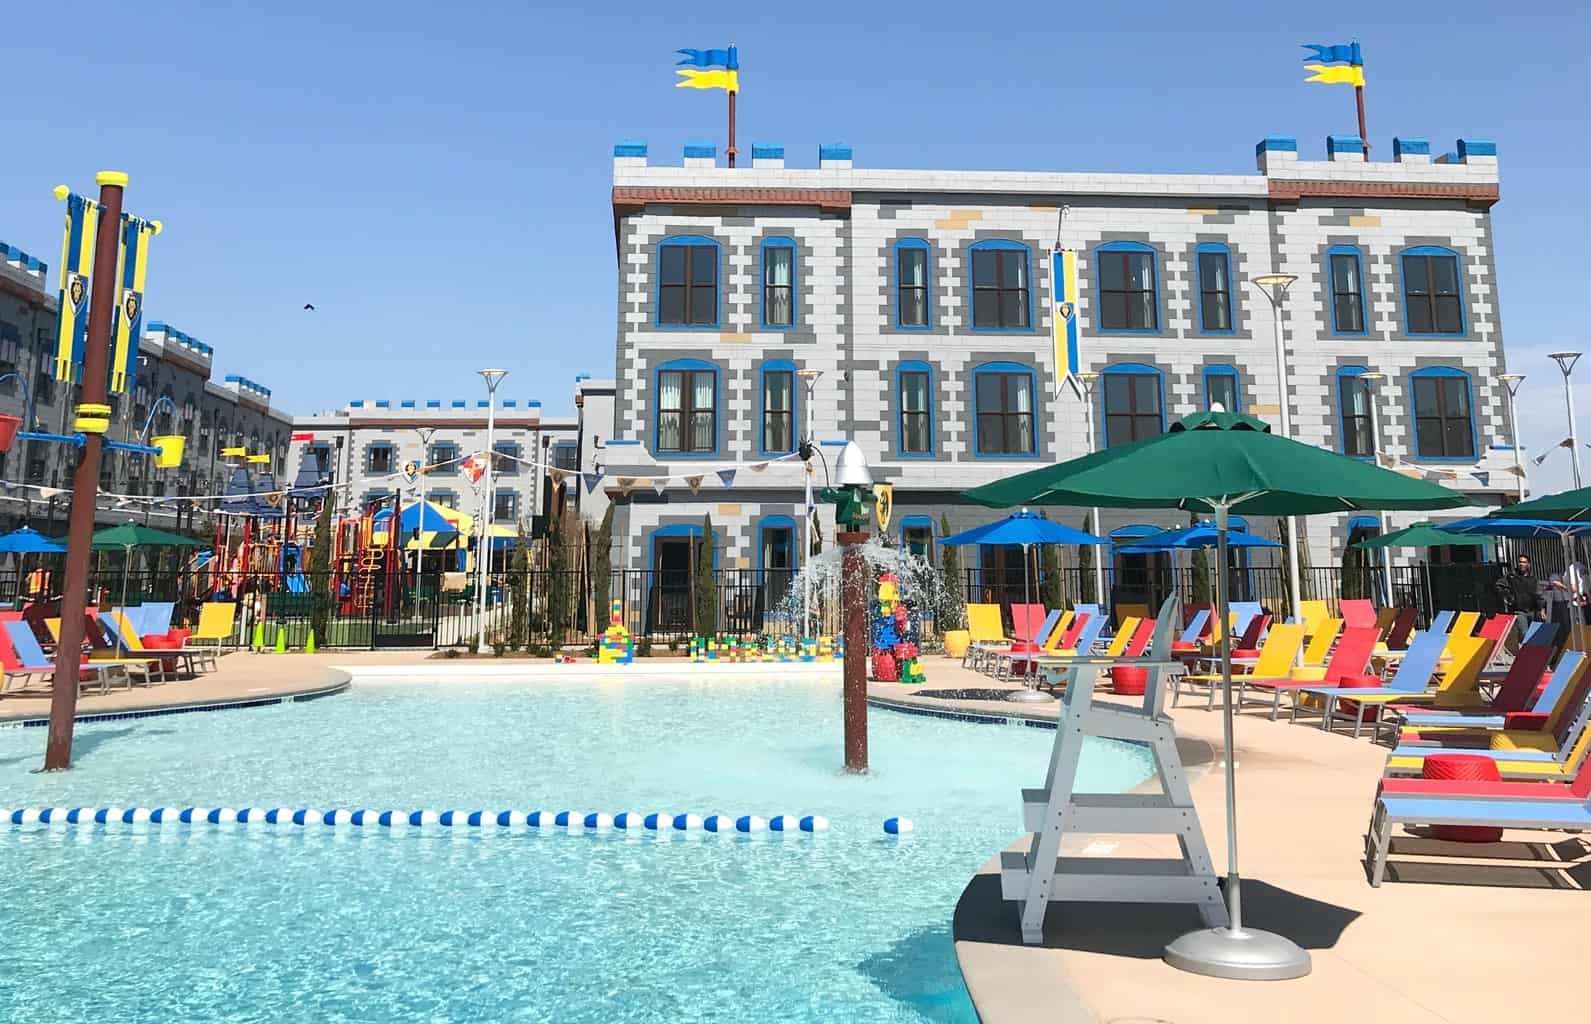 The pool at LEGOLAND Castle Hotel in California